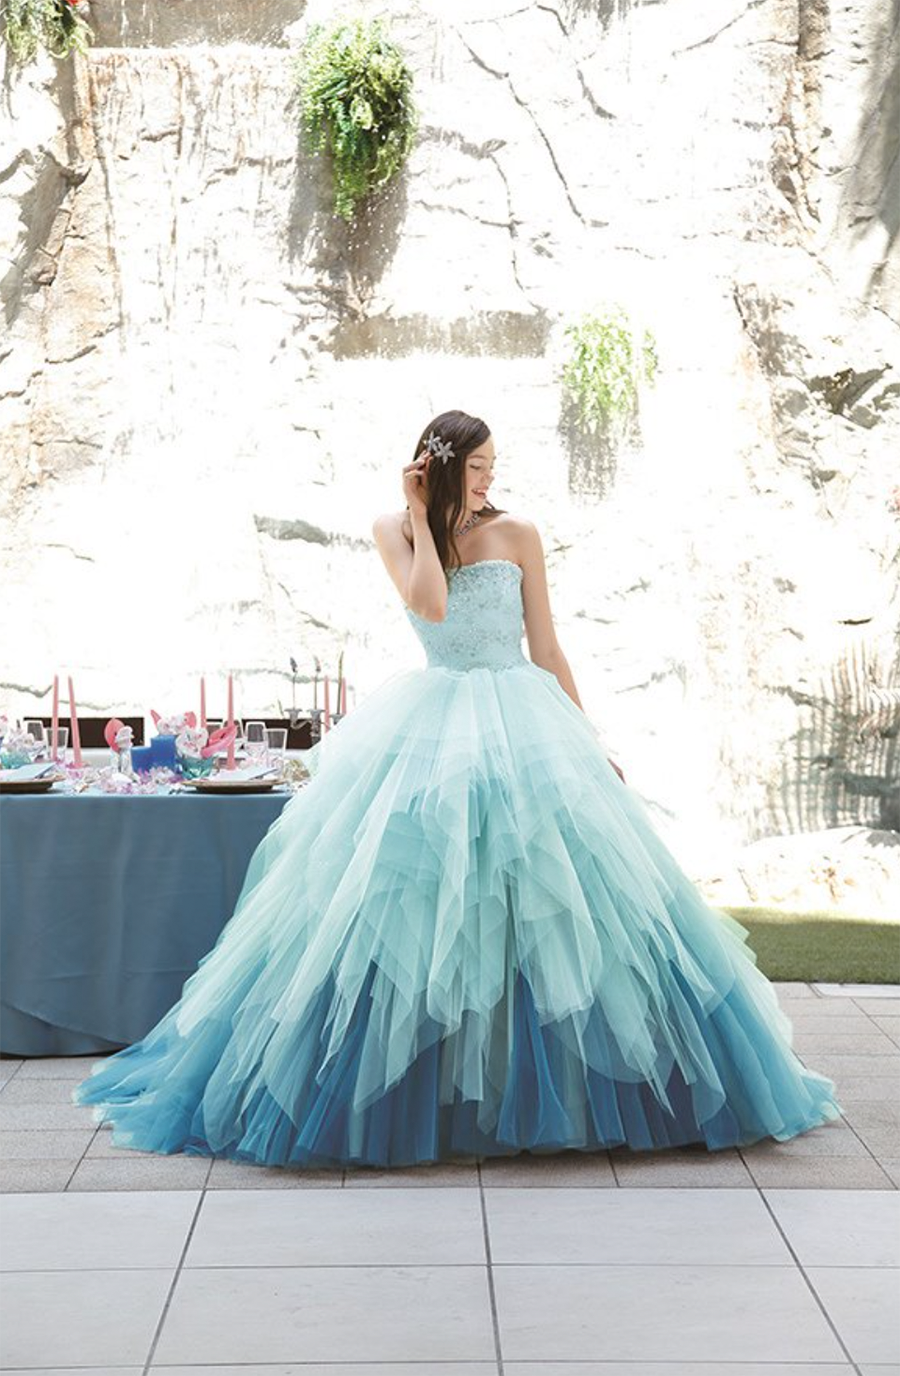 14 Disney Princess Wedding Dresses That Will Make Your Dreams Come ...